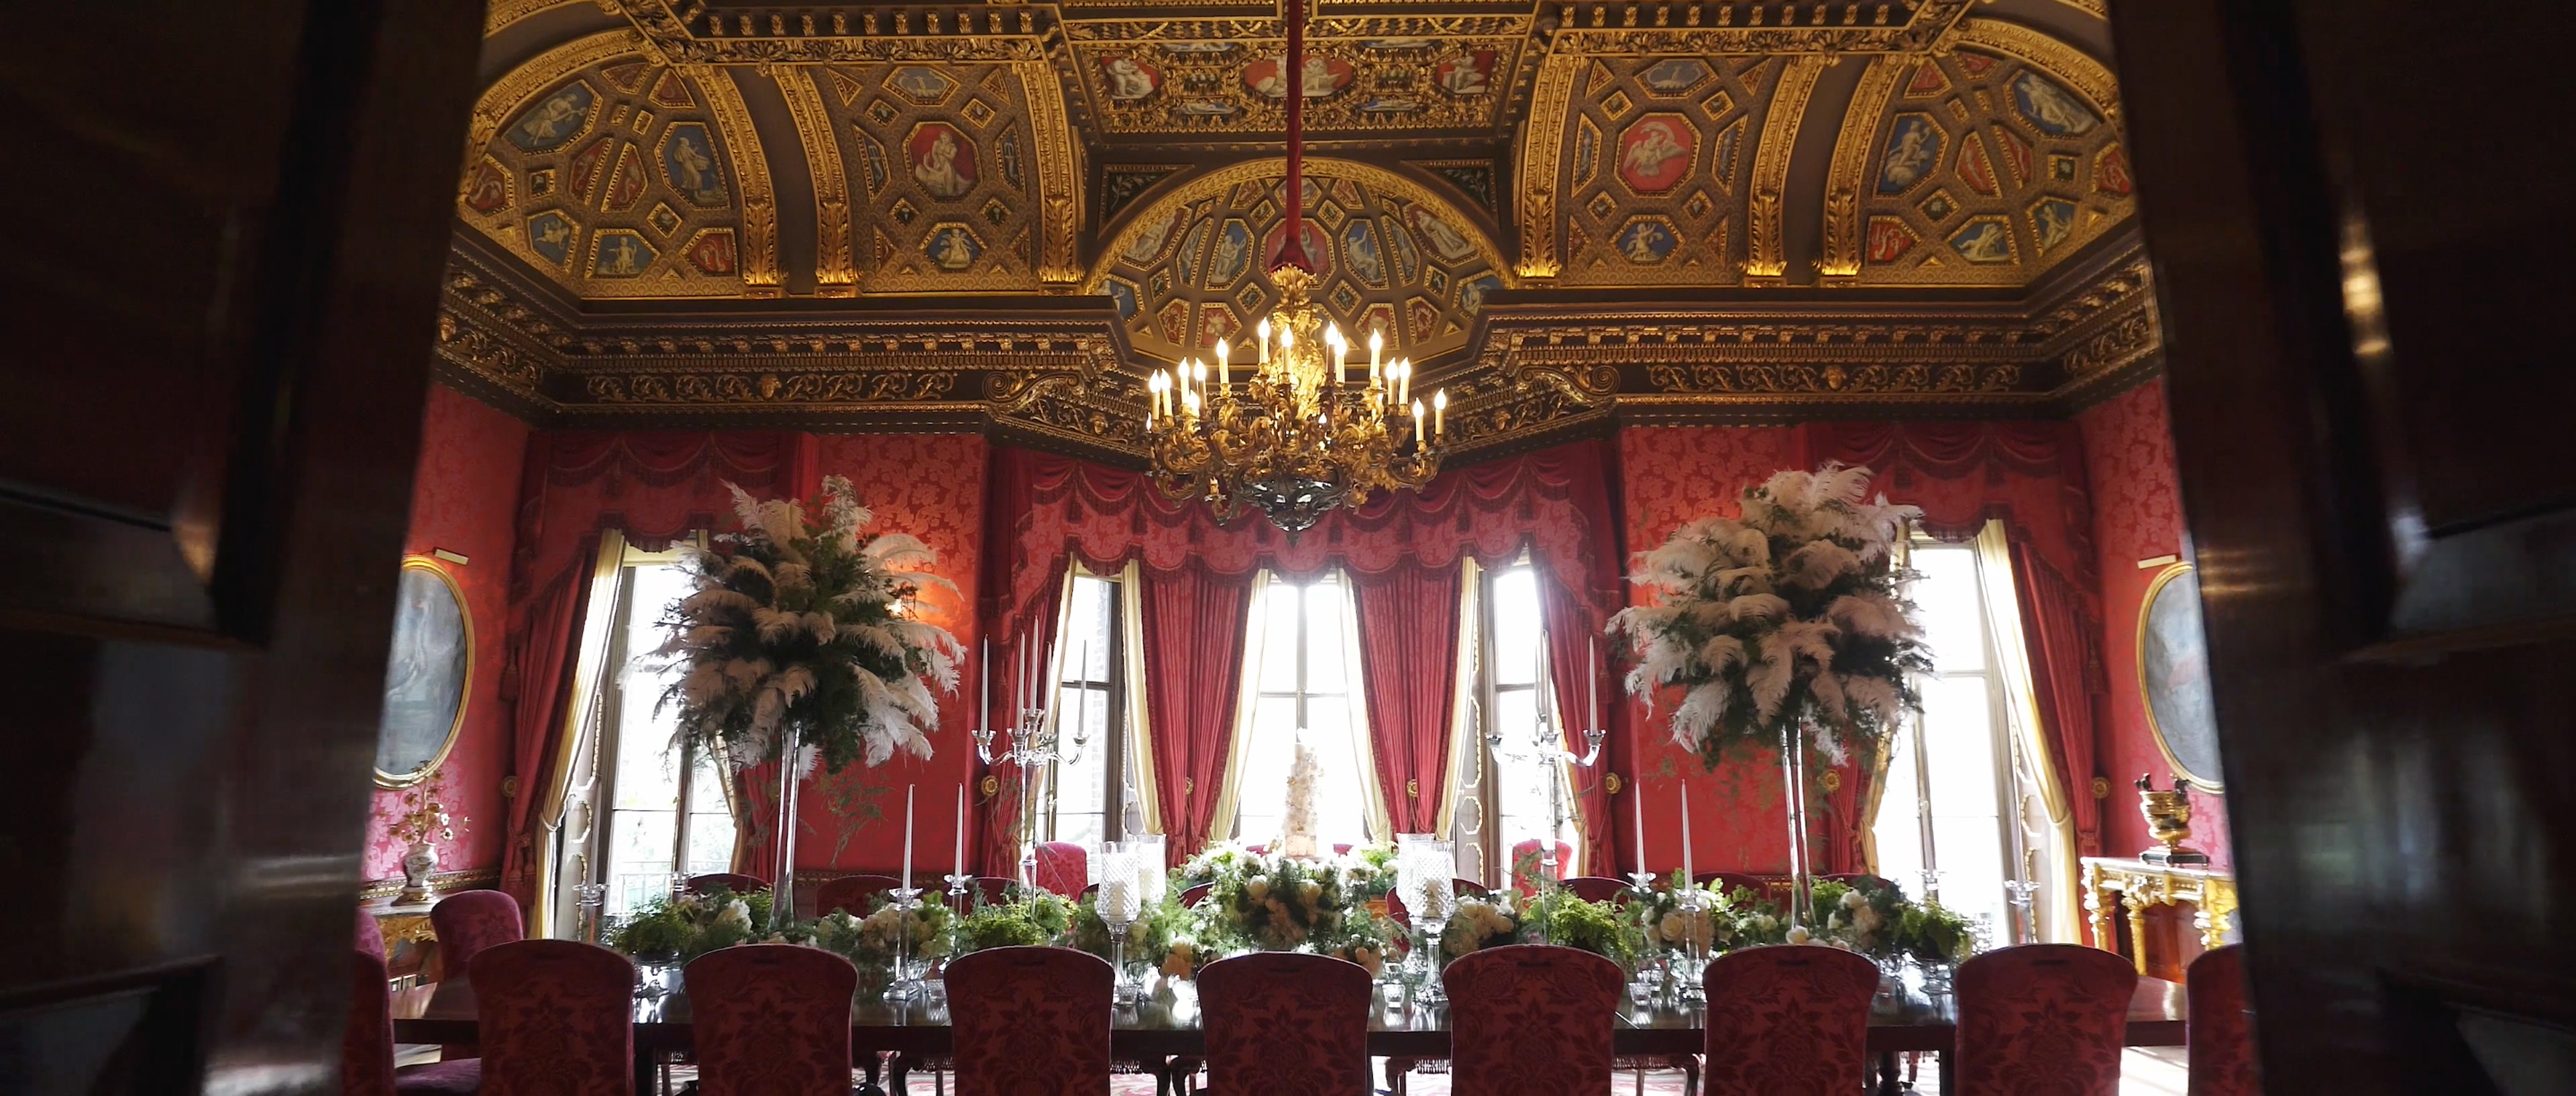 WEDDING AT THE RITZ LONDON